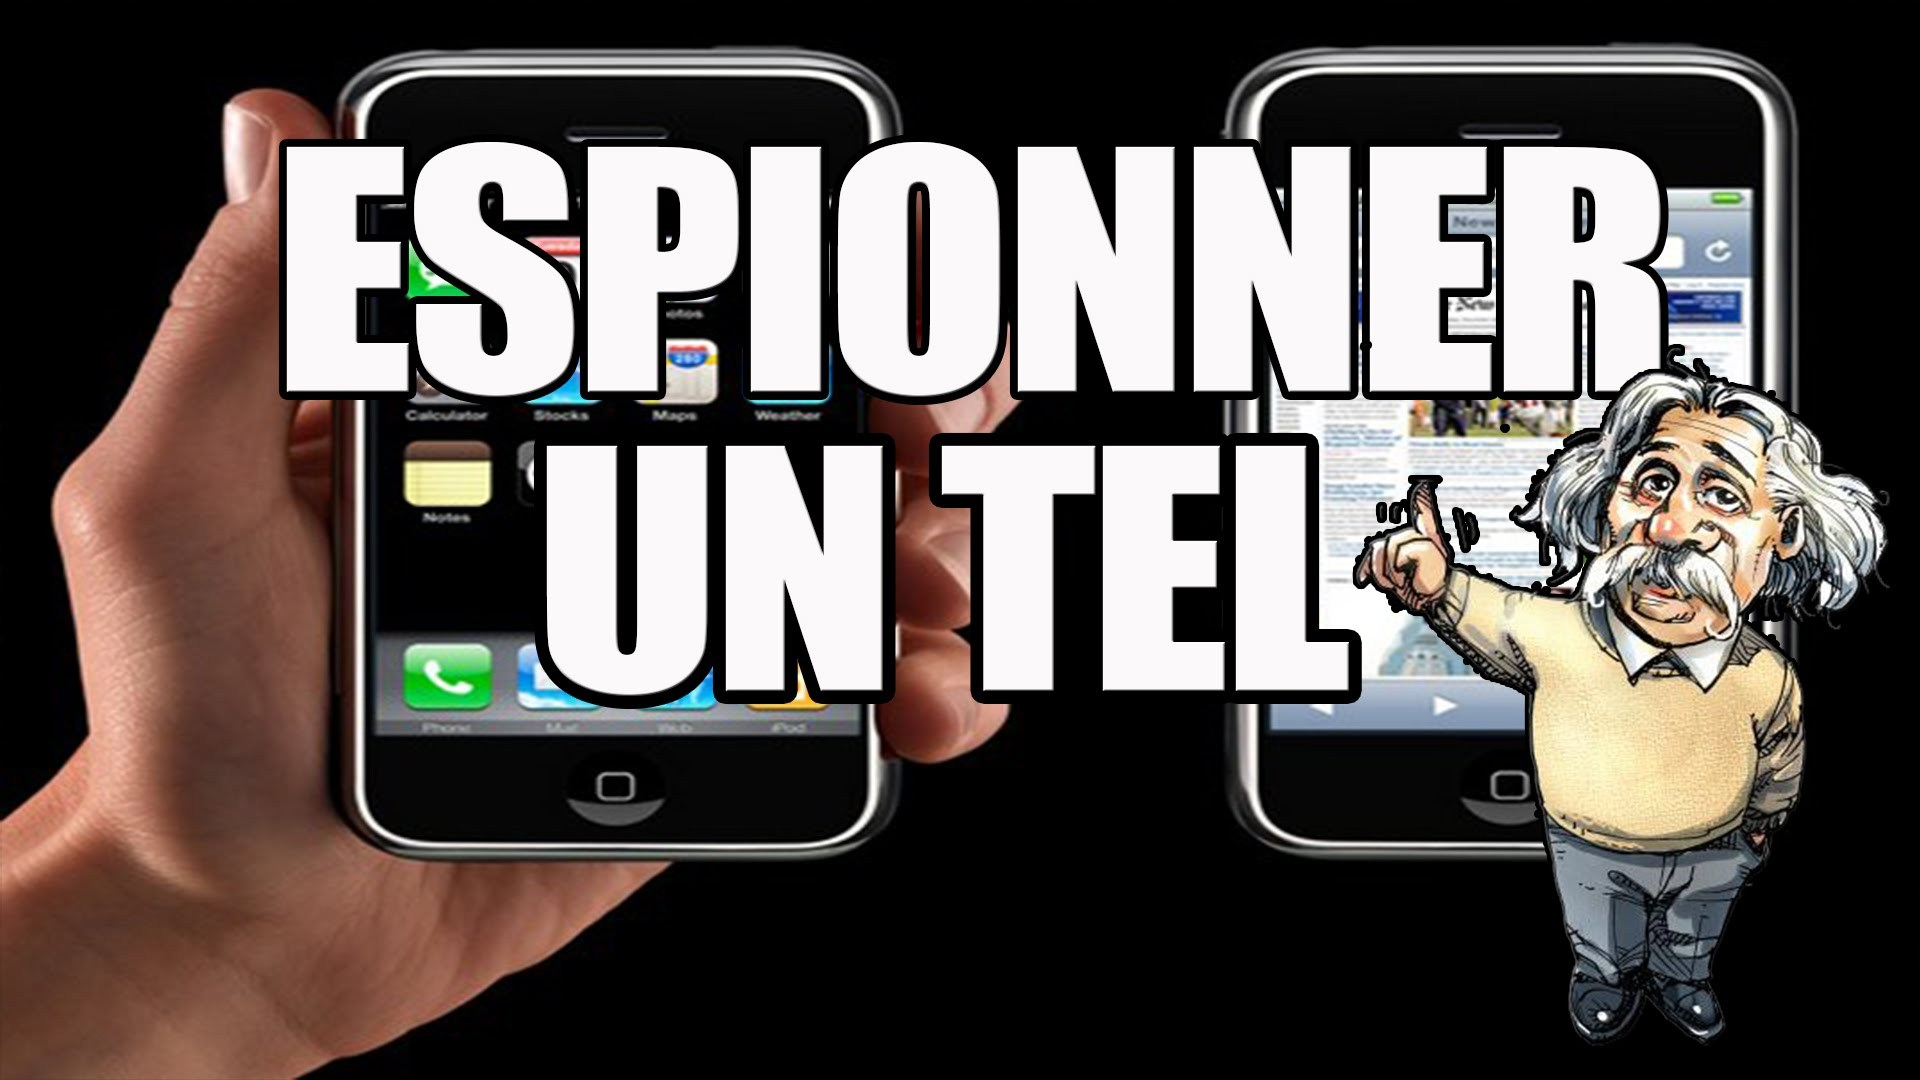 comment espionner un telephone android a distance